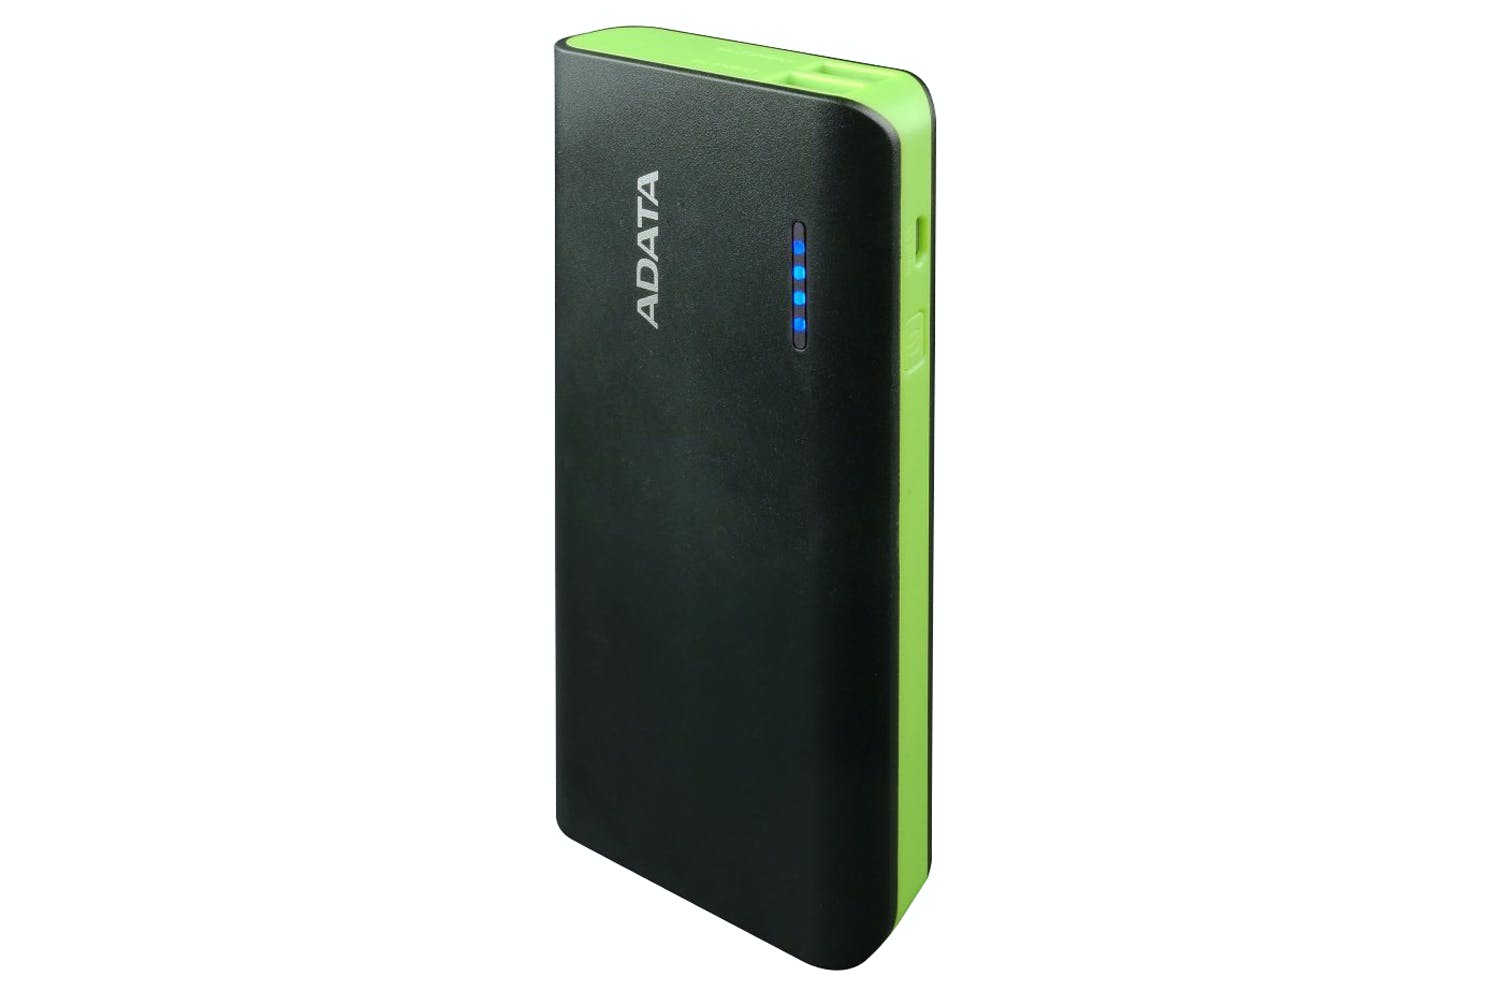 ADATA PT100 Power Bank | Black/Green